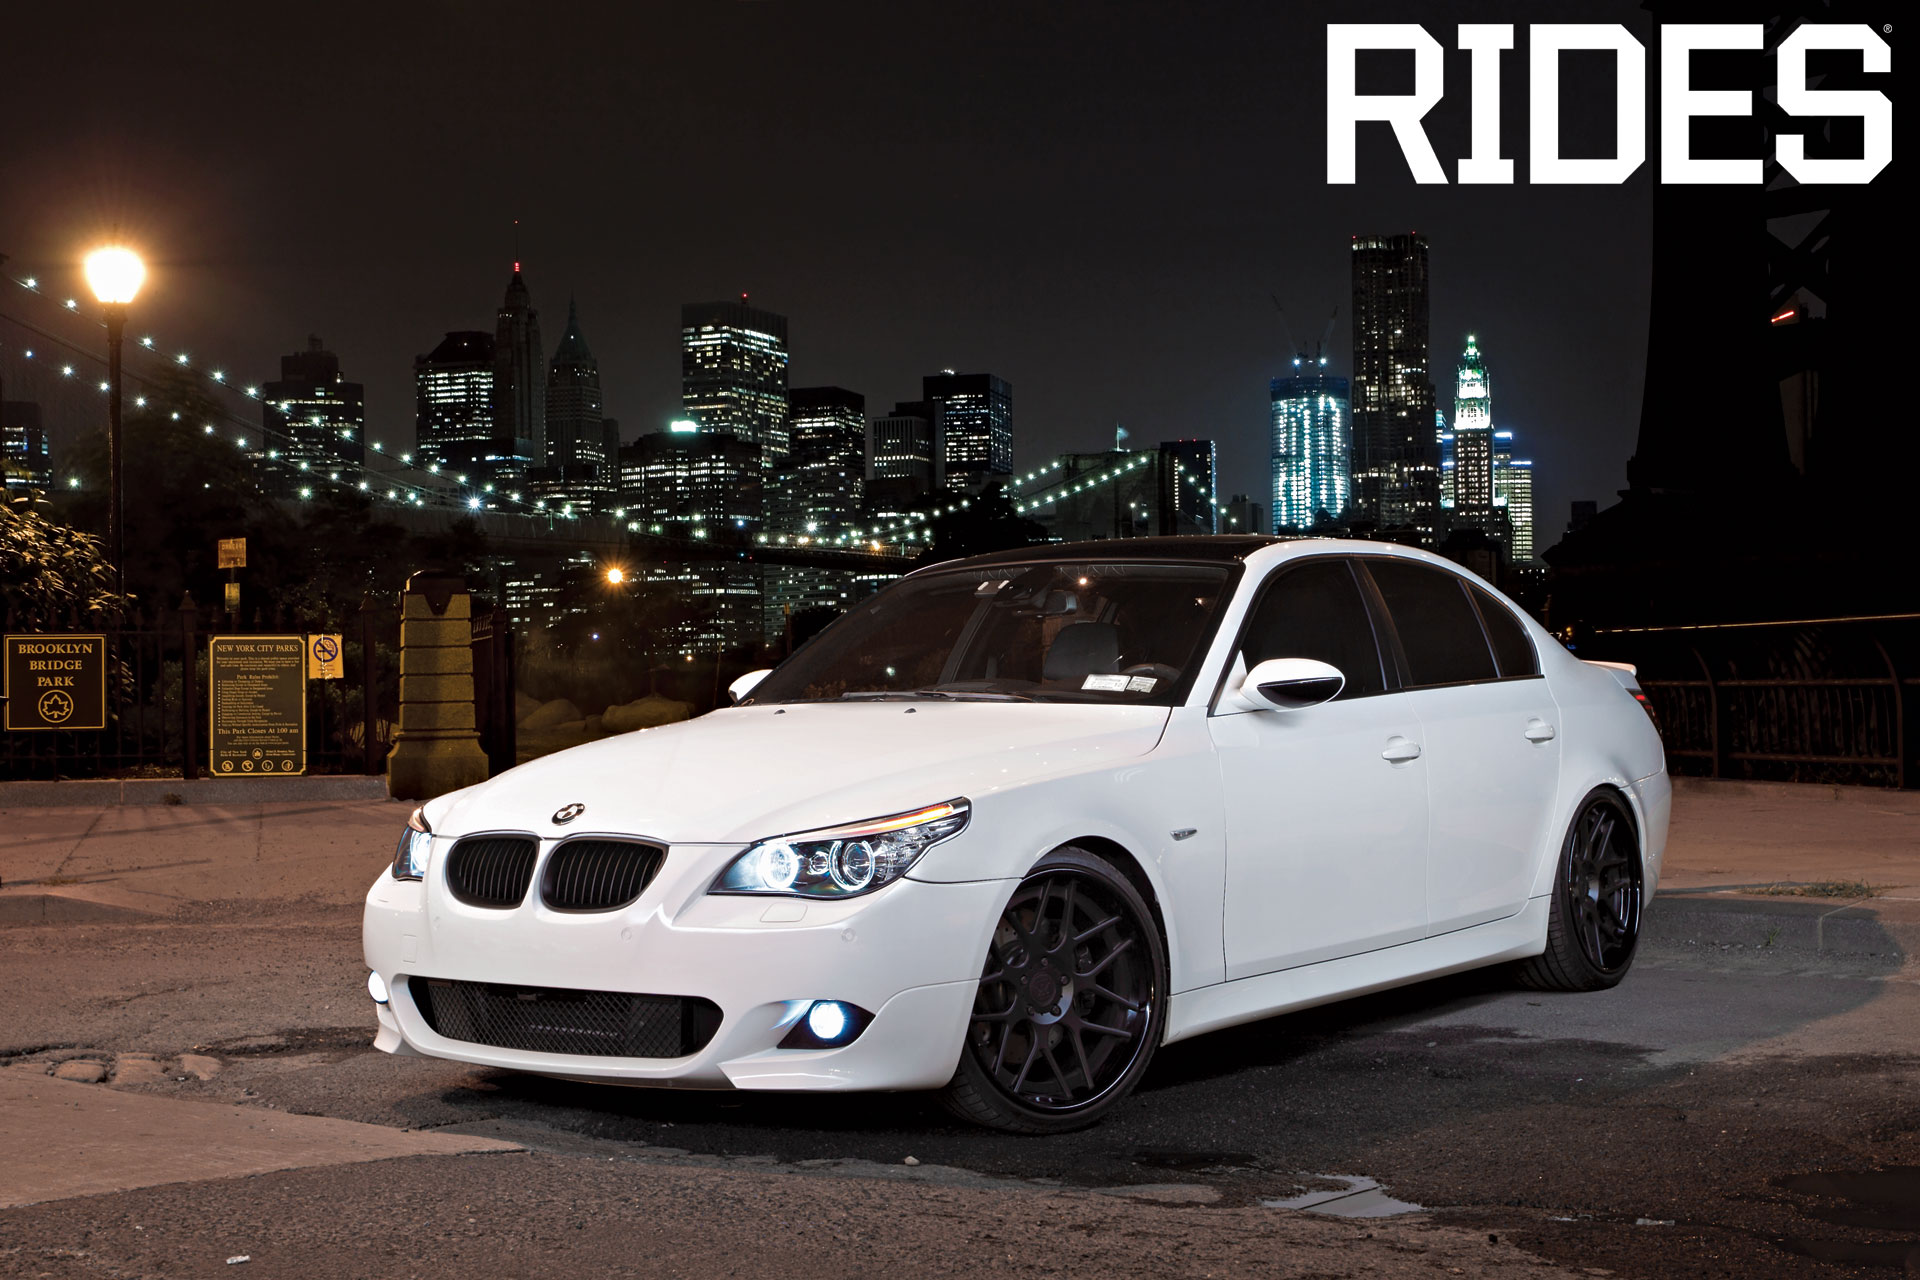 rides cars bmw 550i nyc zuckerberg